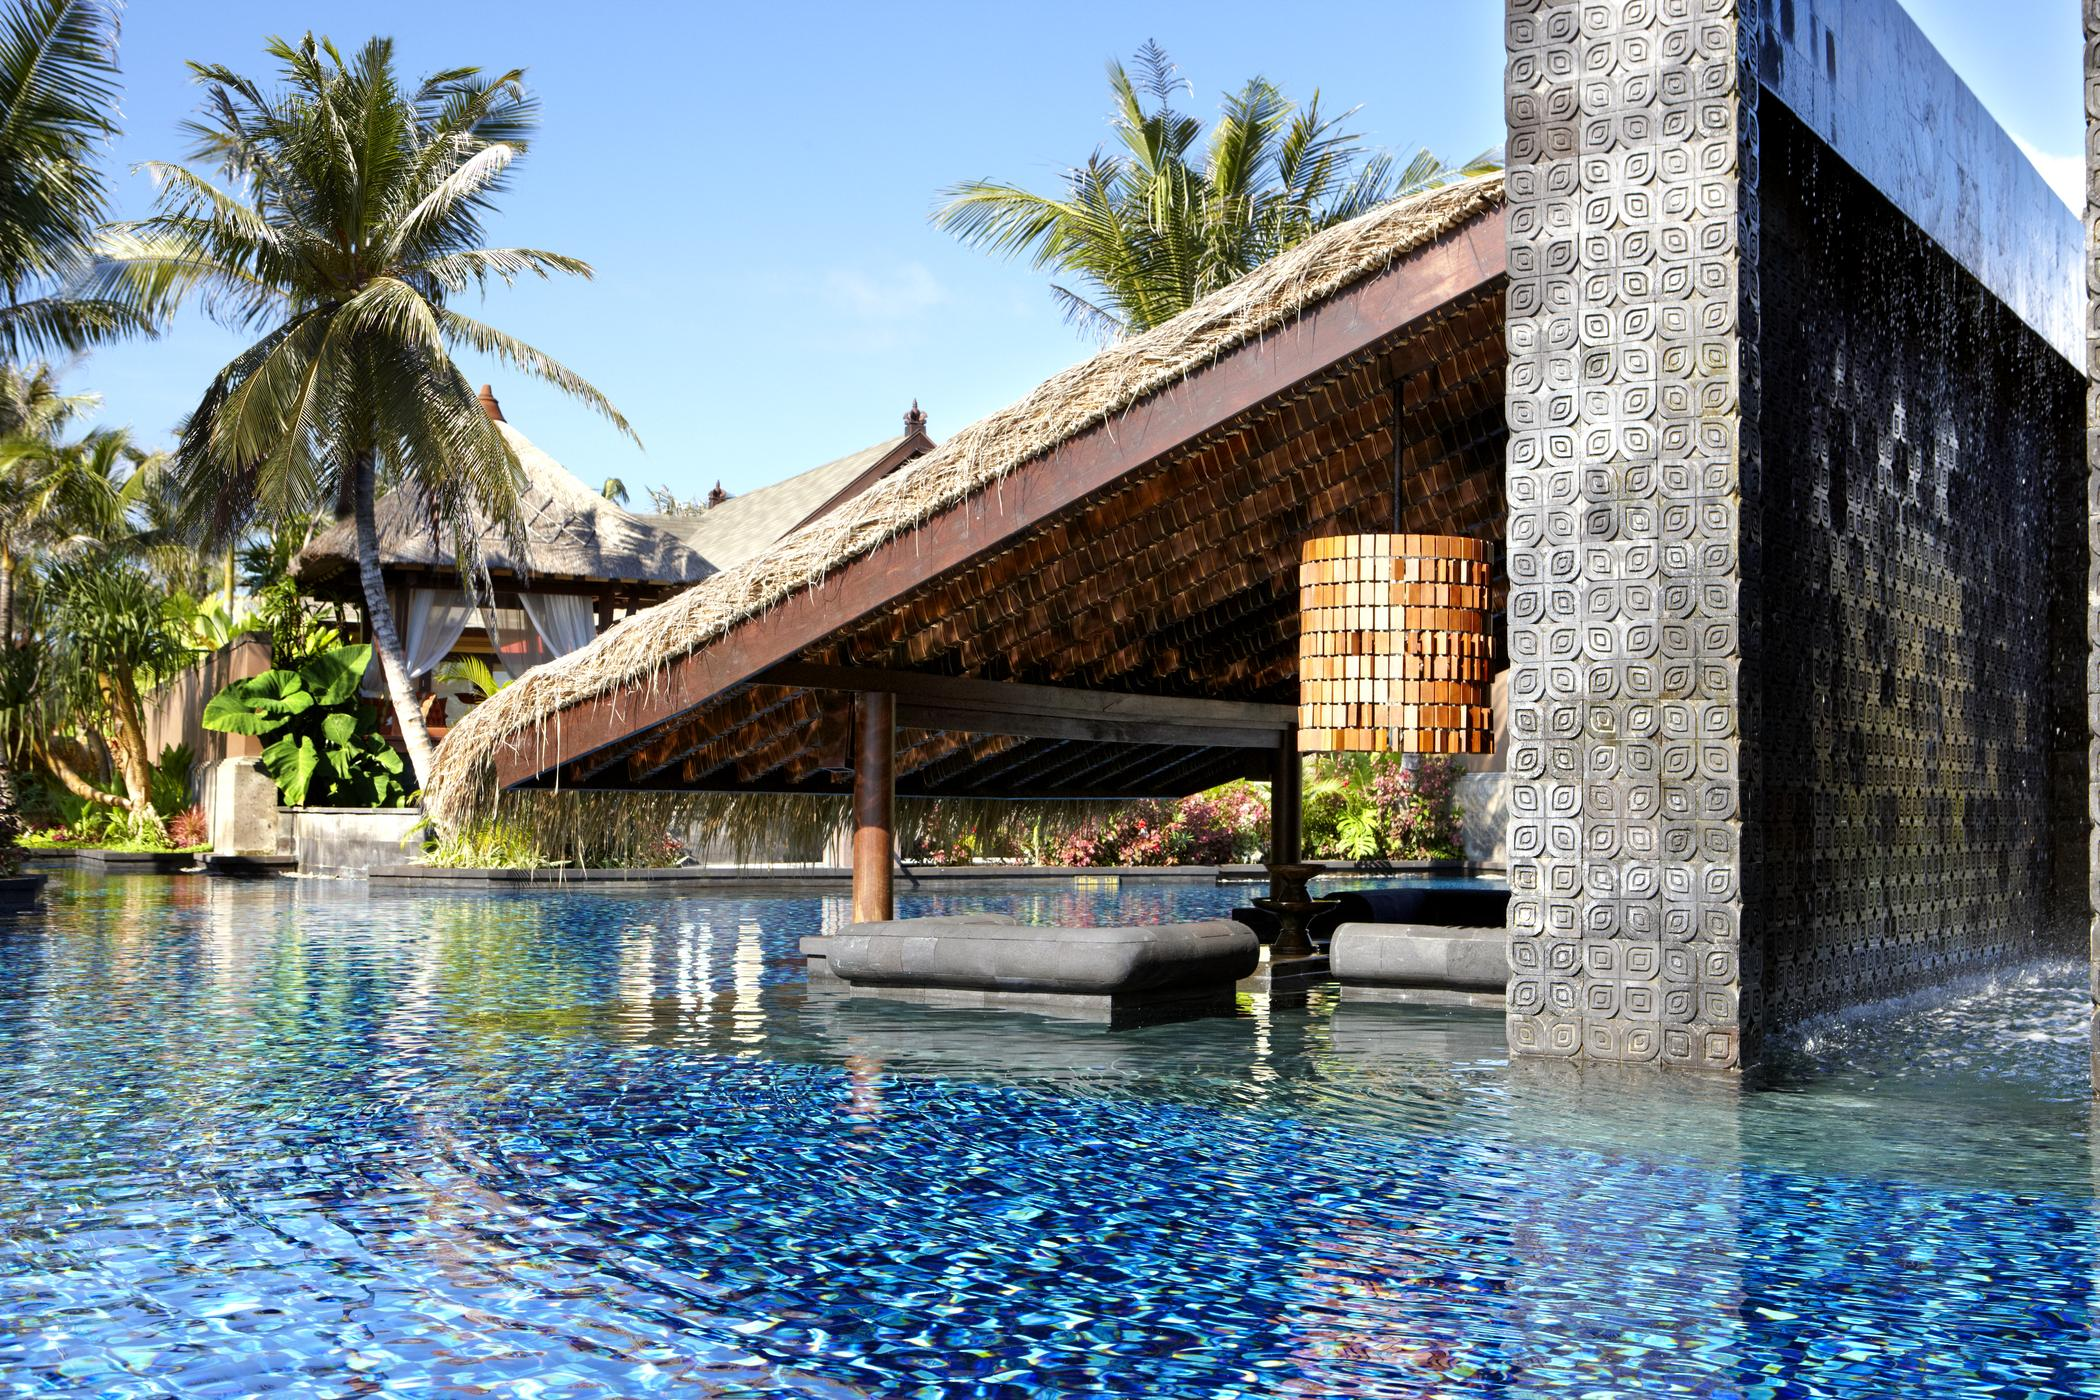 Bali the island of resort paradises andrew forbes for The bali hotel